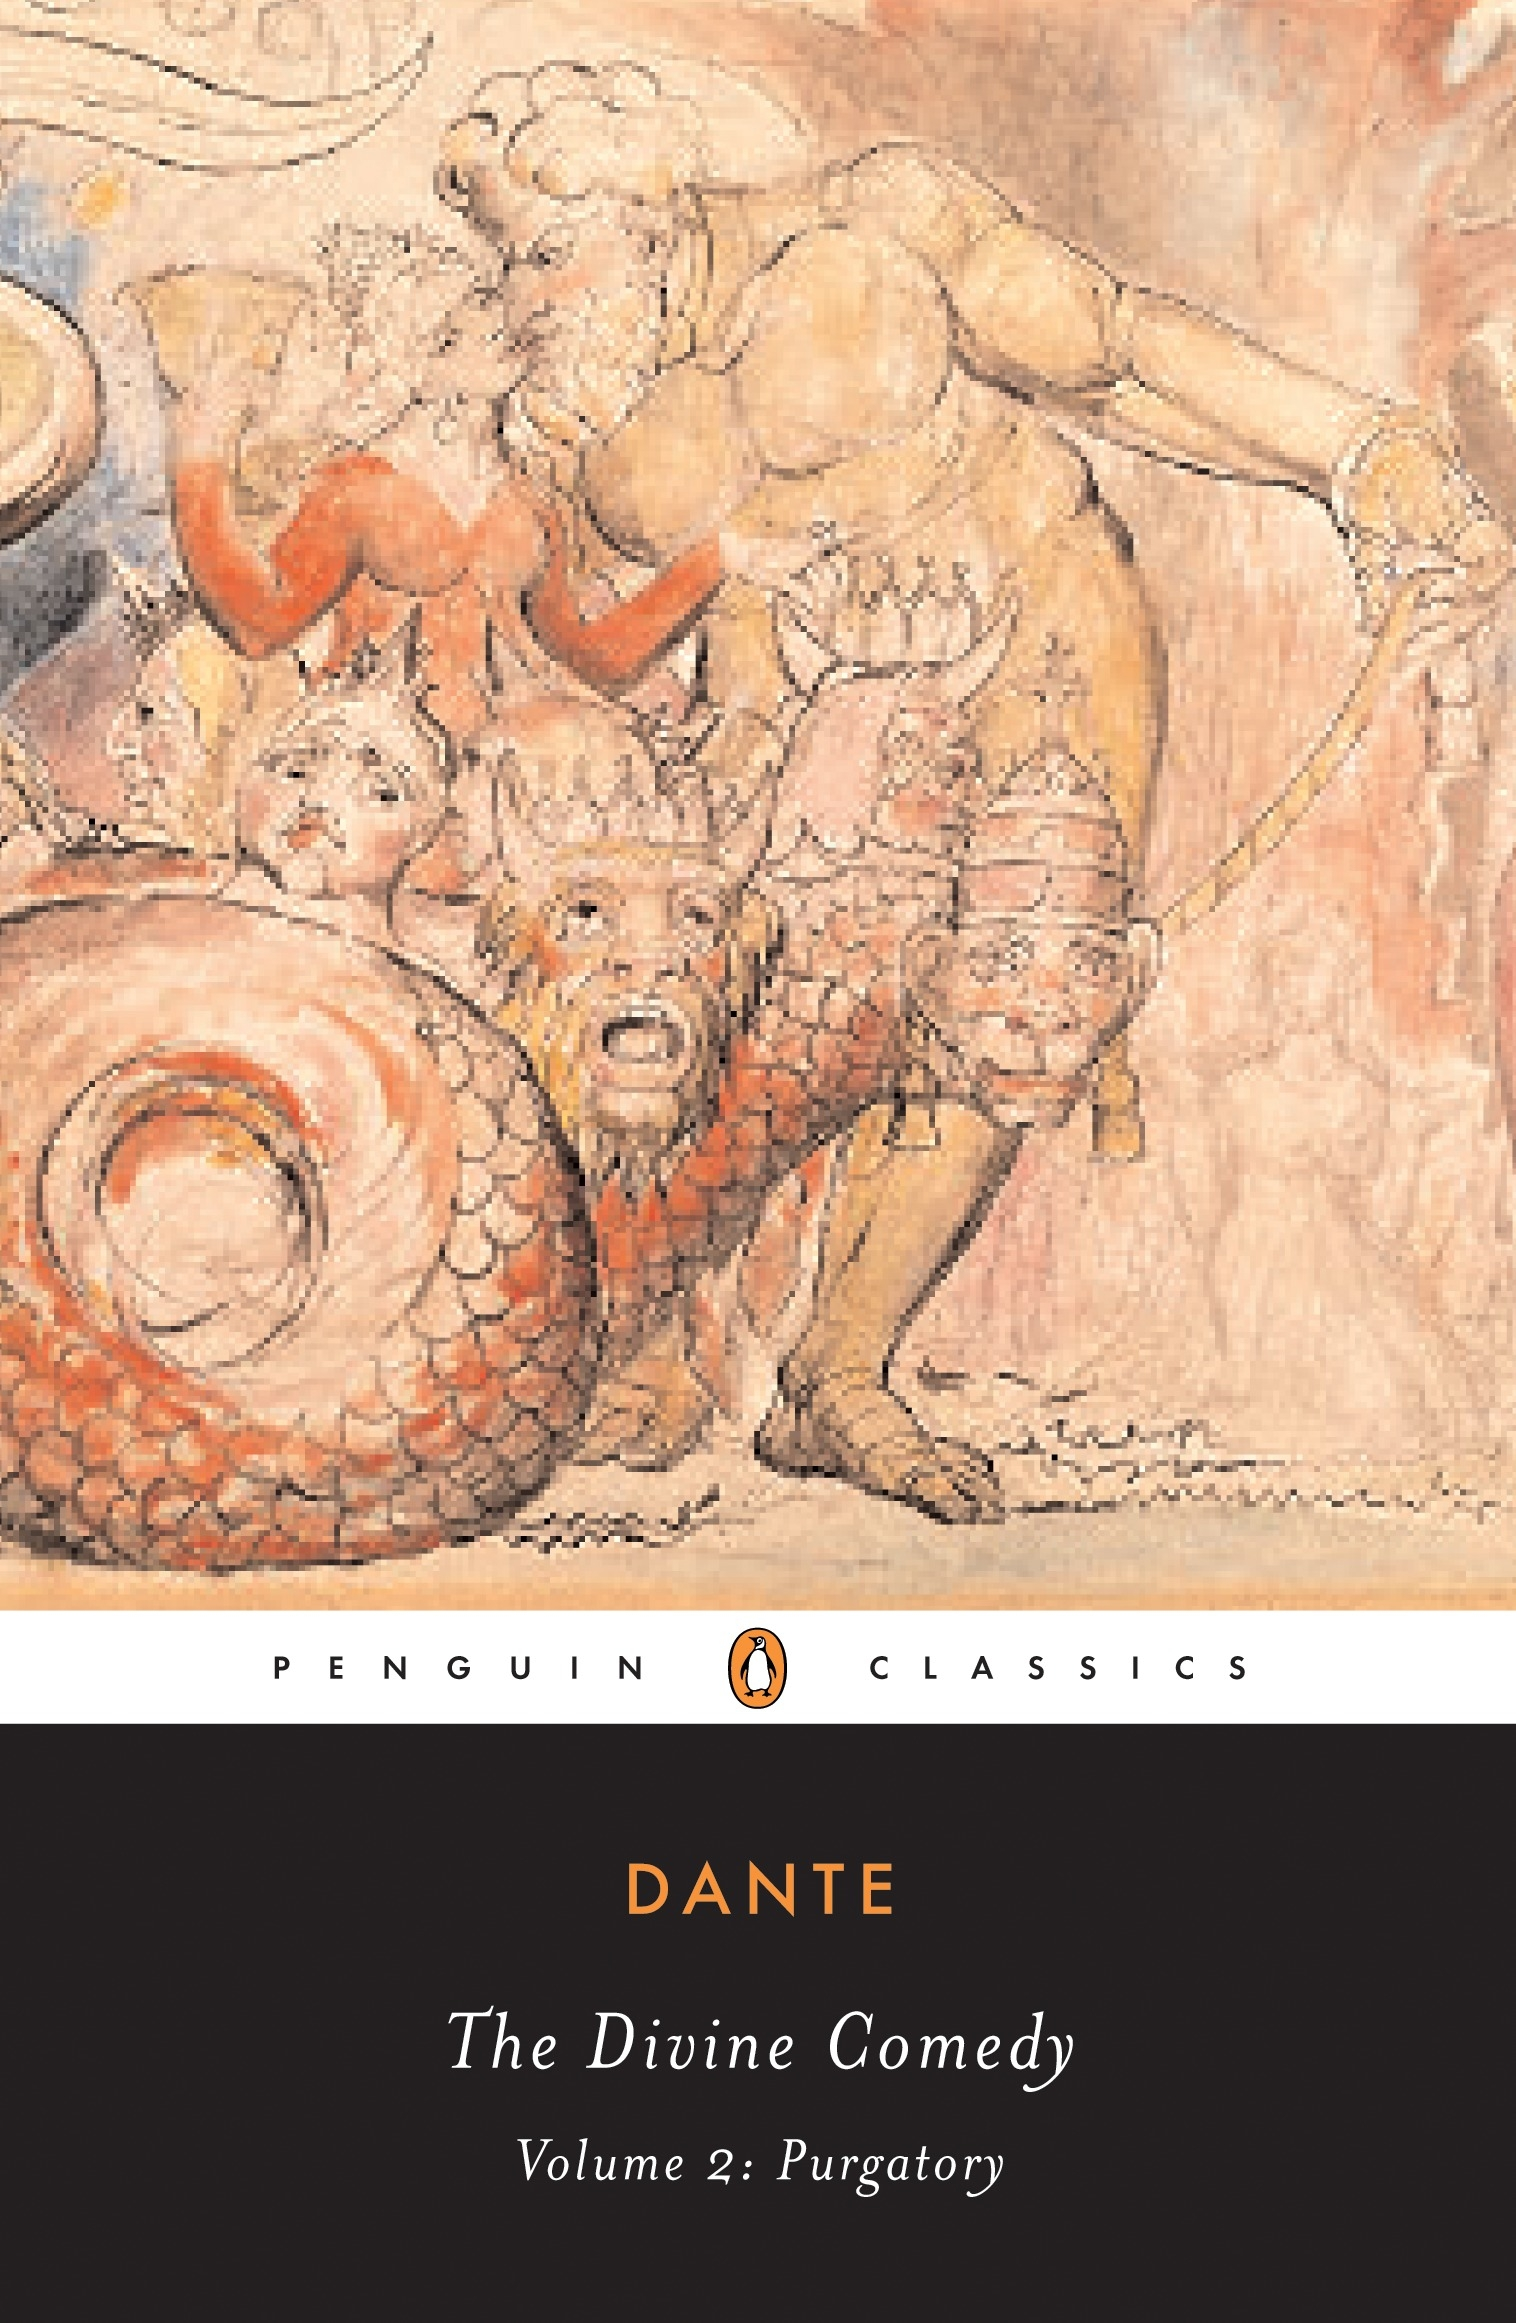 an analysis of purgatory a section of the divine comedy by dante alighieri La divina commedia di dante (dante and the divine comedy) purgatory: 8 maps of dante's purgatorio dante alighieri.